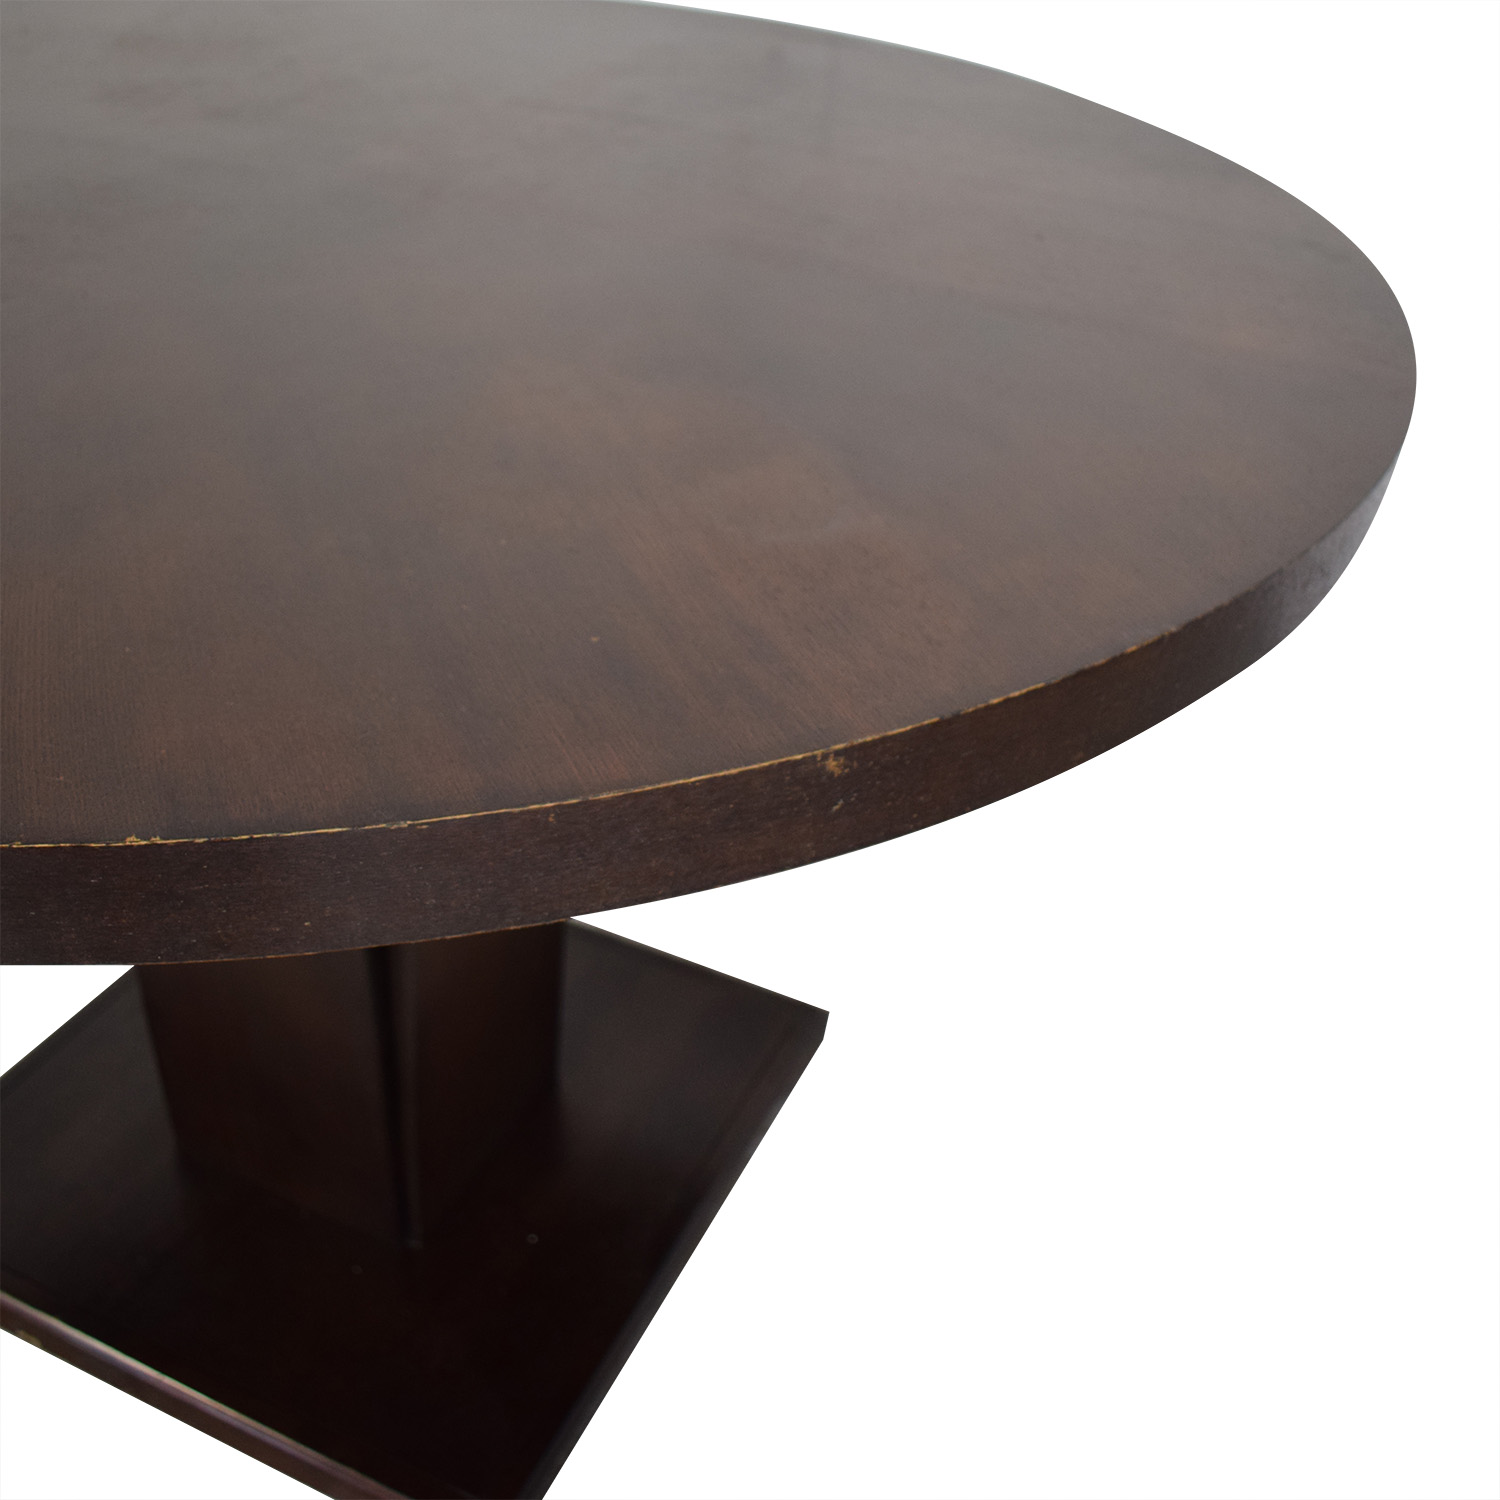 shop Crate & Barrel Espresso Round Dining Table Crate & Barrel Dinner Tables